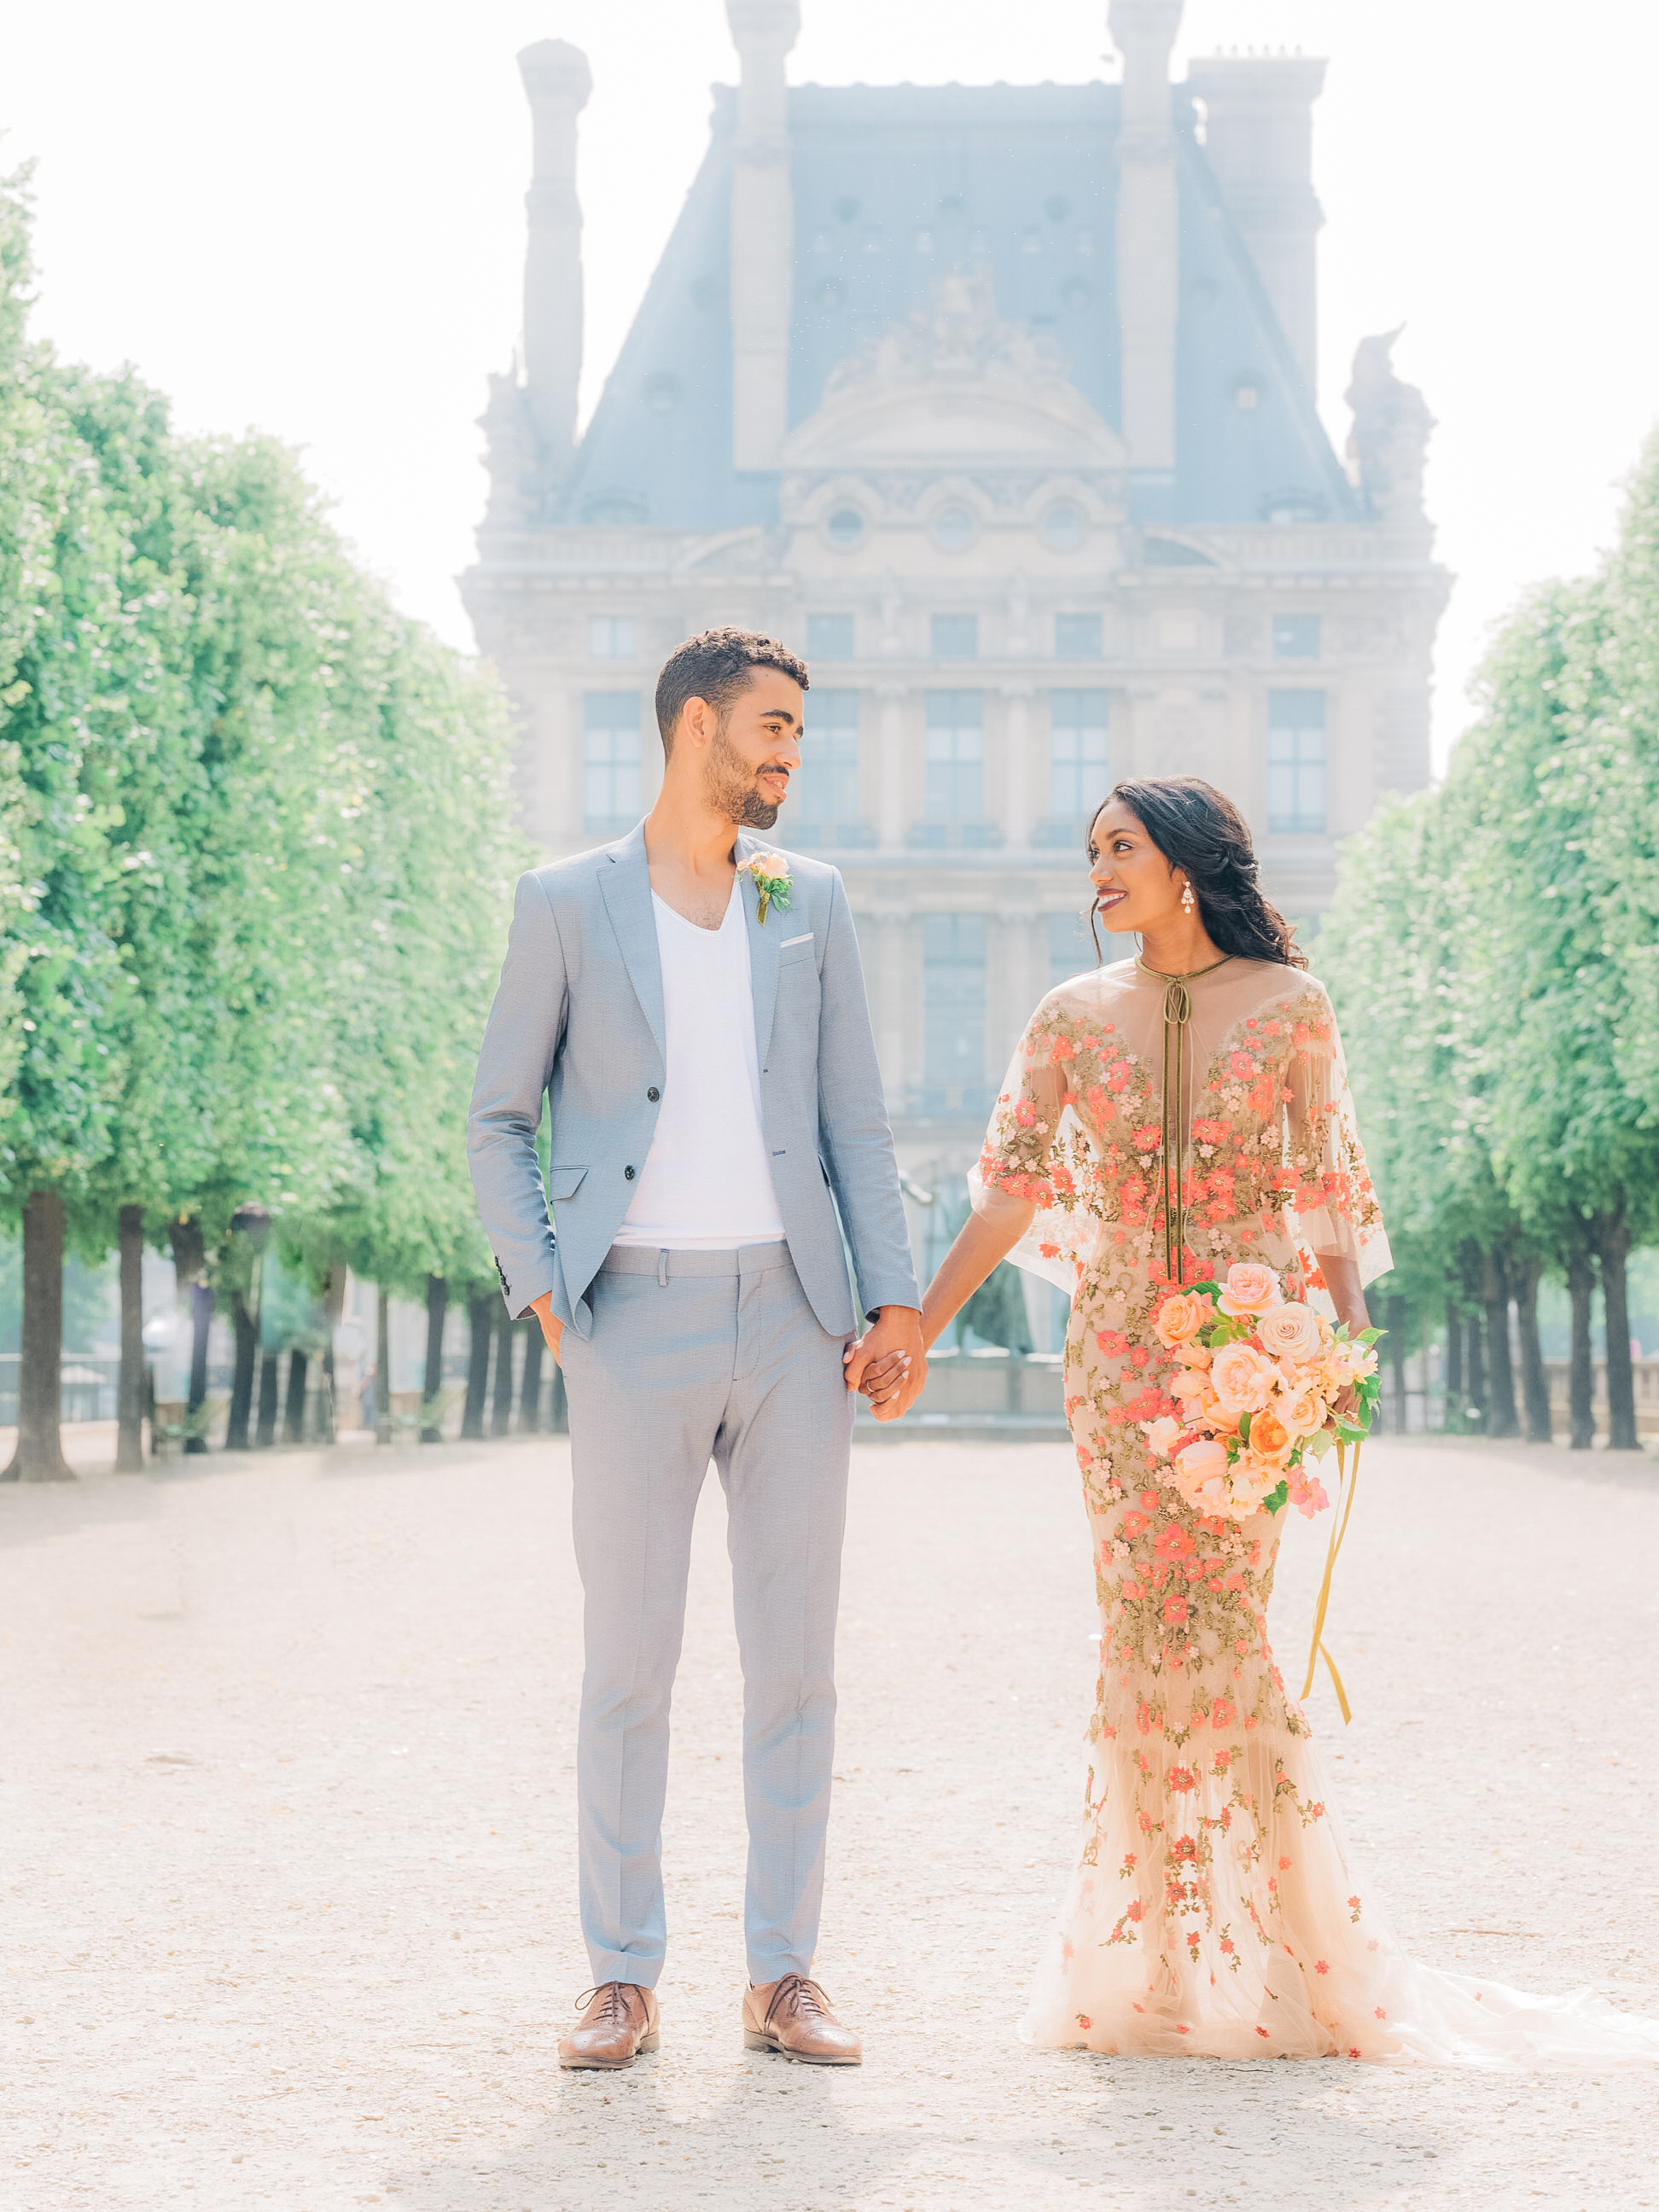 Gorgeous elopement shoot in the Tuileries Gardens